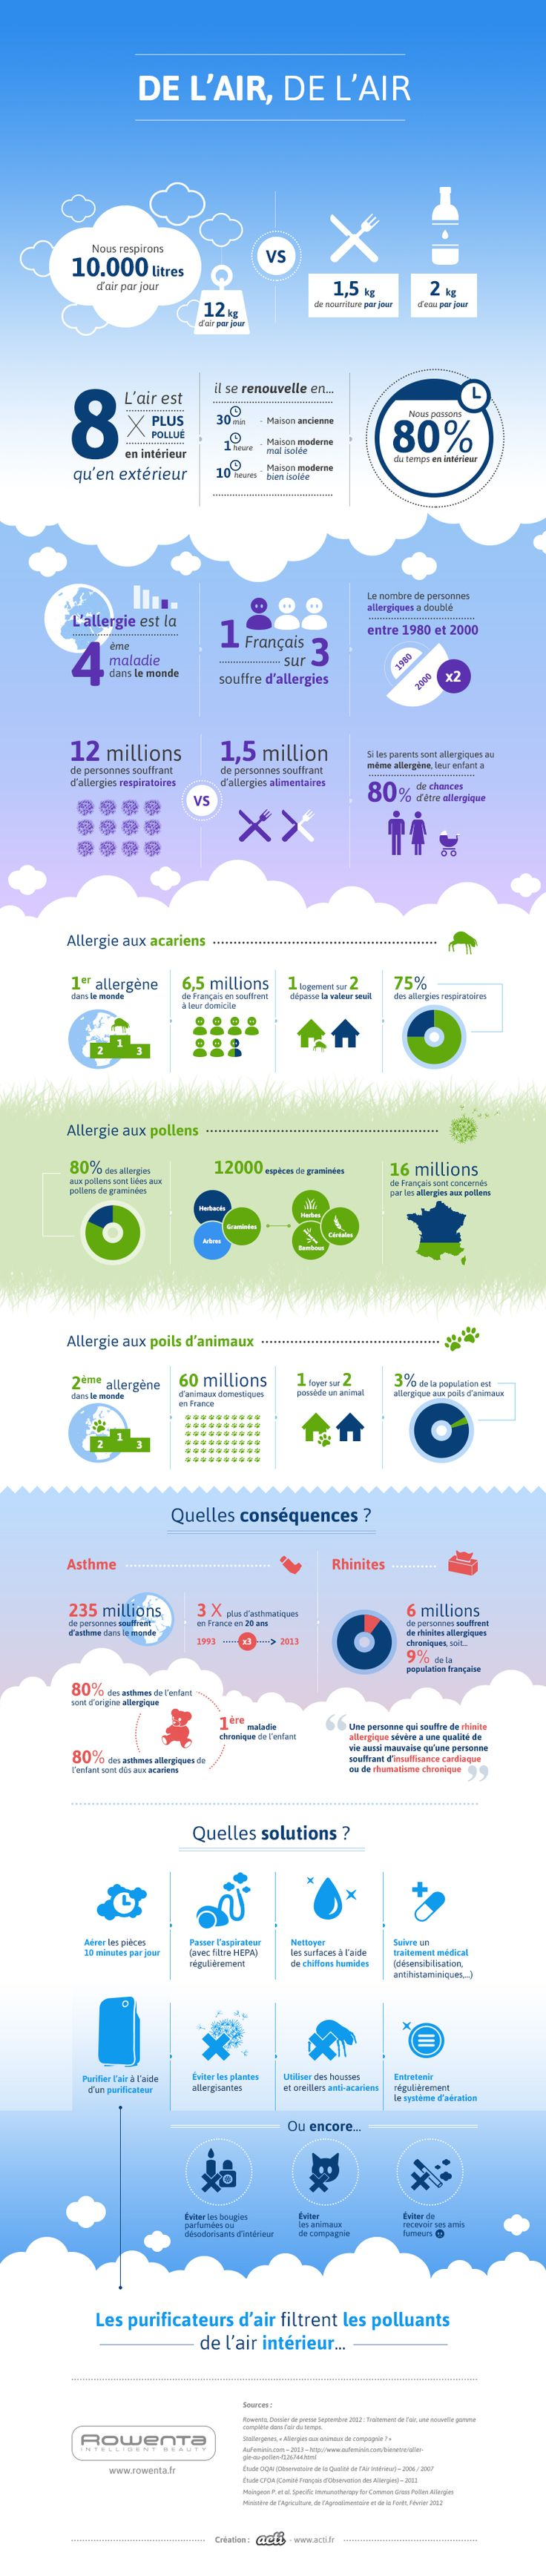 Infographie : mieux respirer face aux allergies